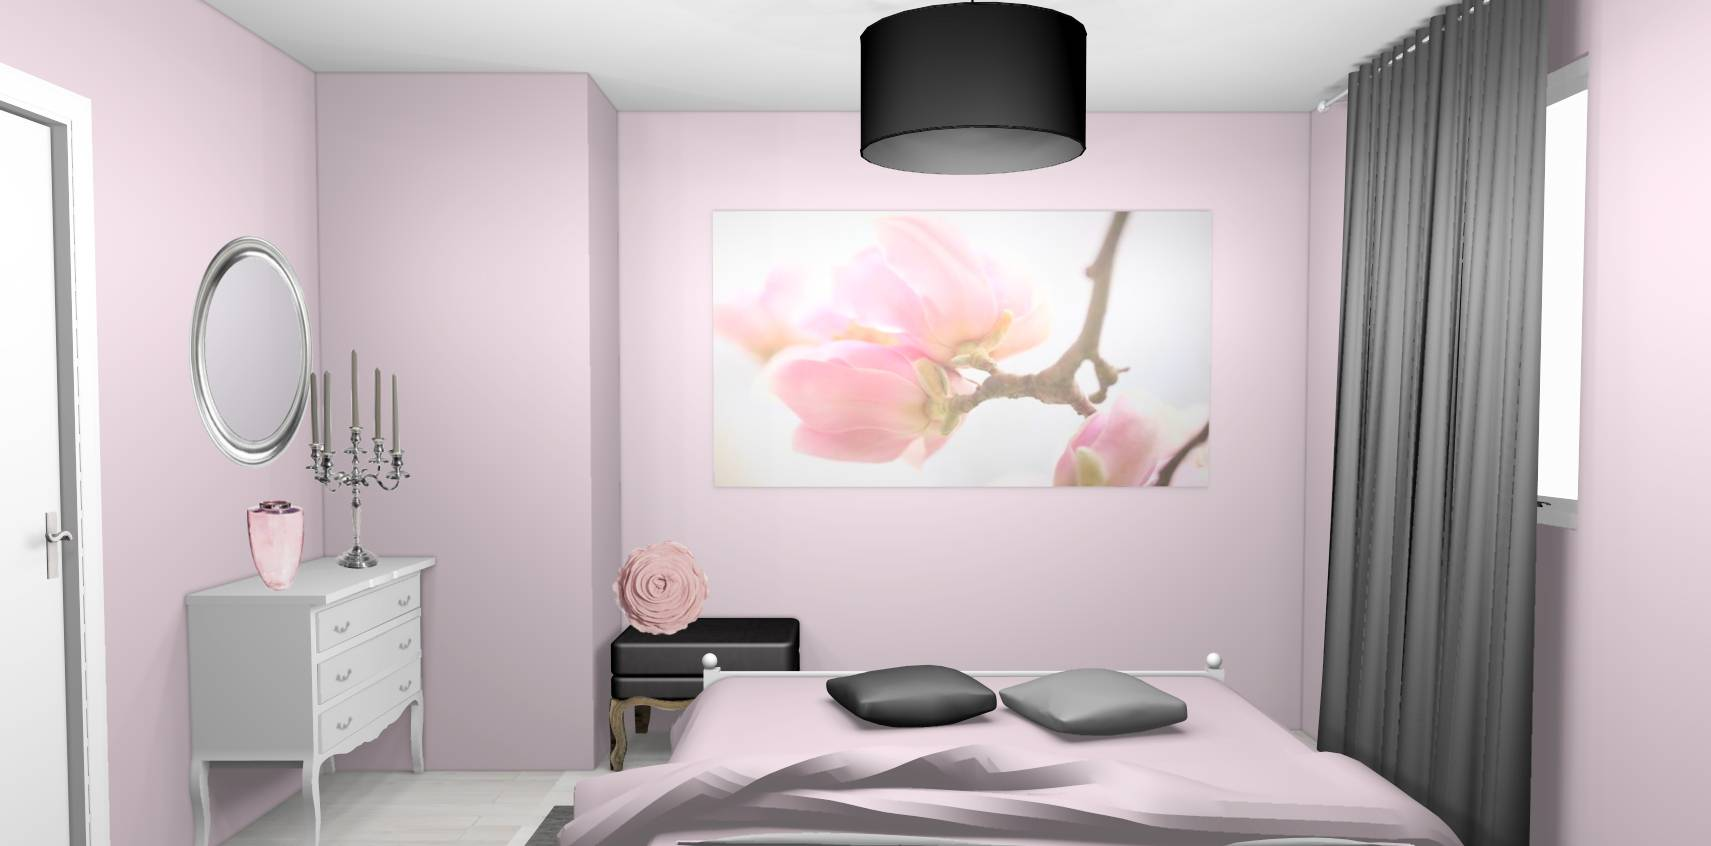 tapisserie chambre rose et gris avec des id es int ressantes pour la conception. Black Bedroom Furniture Sets. Home Design Ideas